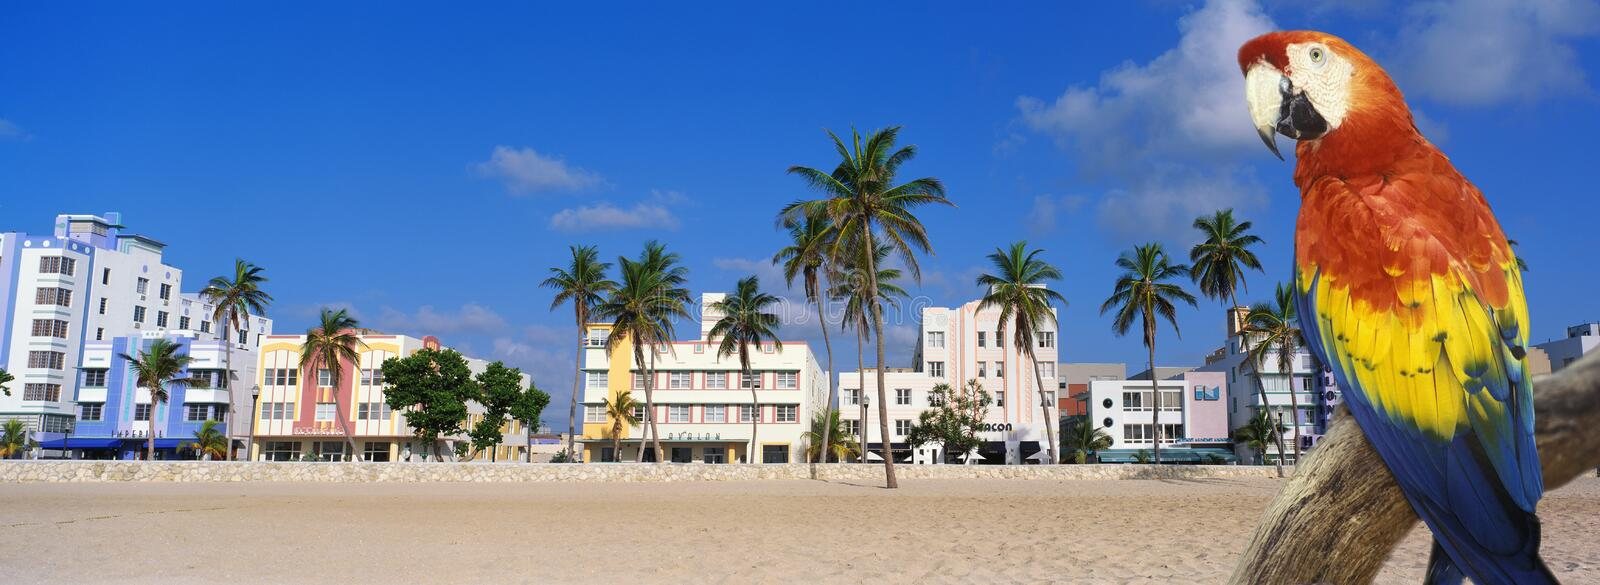 Composite panoramic image of a colorful parrot and coastline in Miami Beach, Florida royalty free stock photo